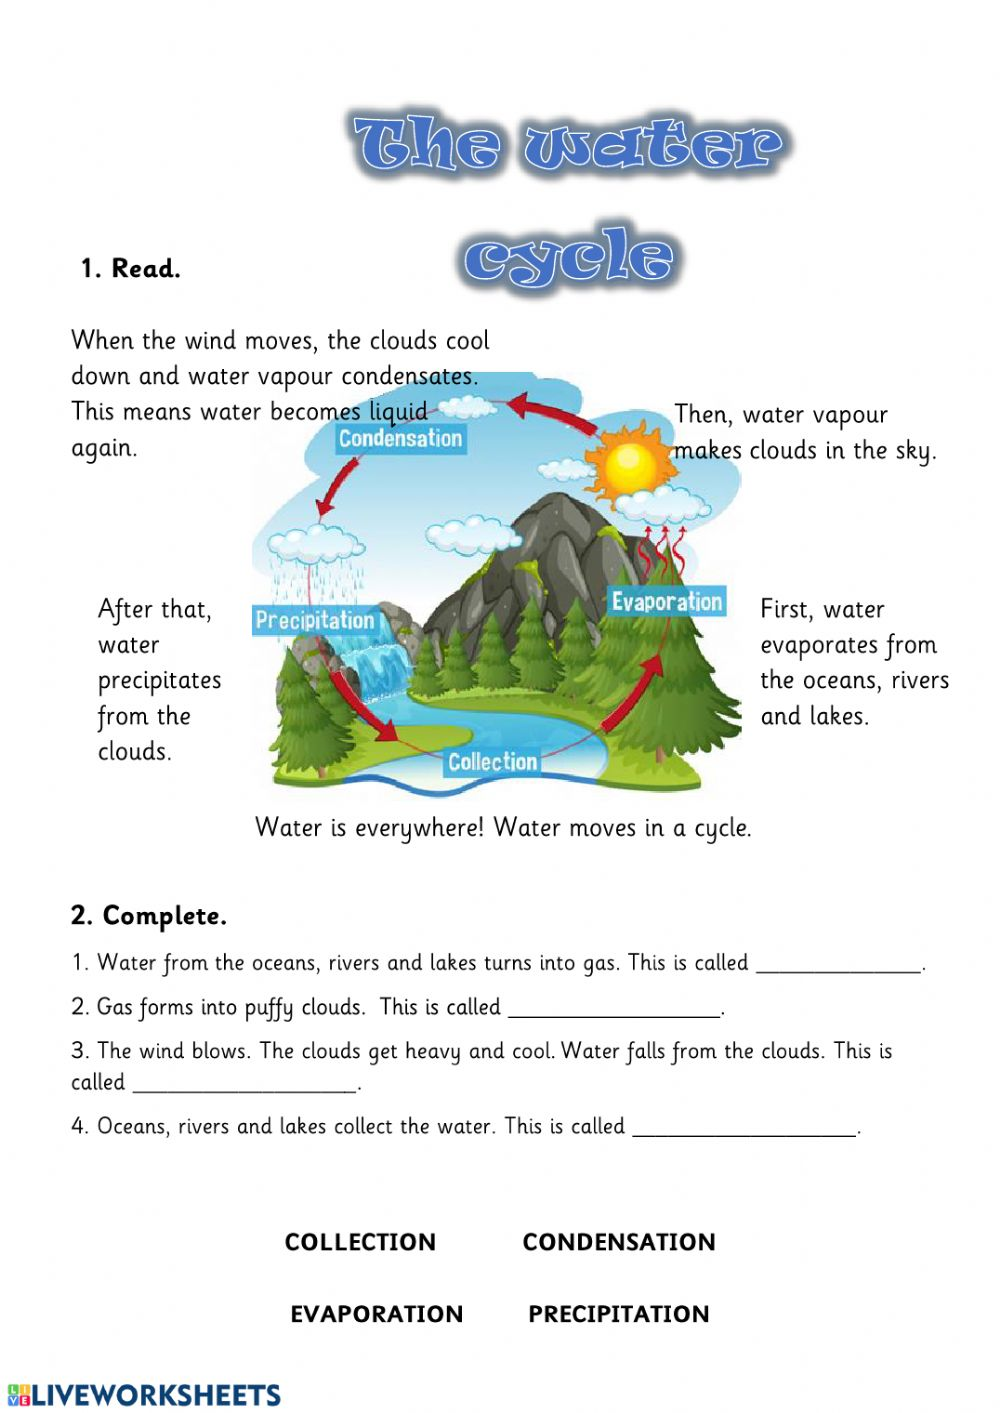 medium resolution of The Water Cycle online exercise for 4. You can do the exercises online or  download the worksheet as pdf.   Water cycle